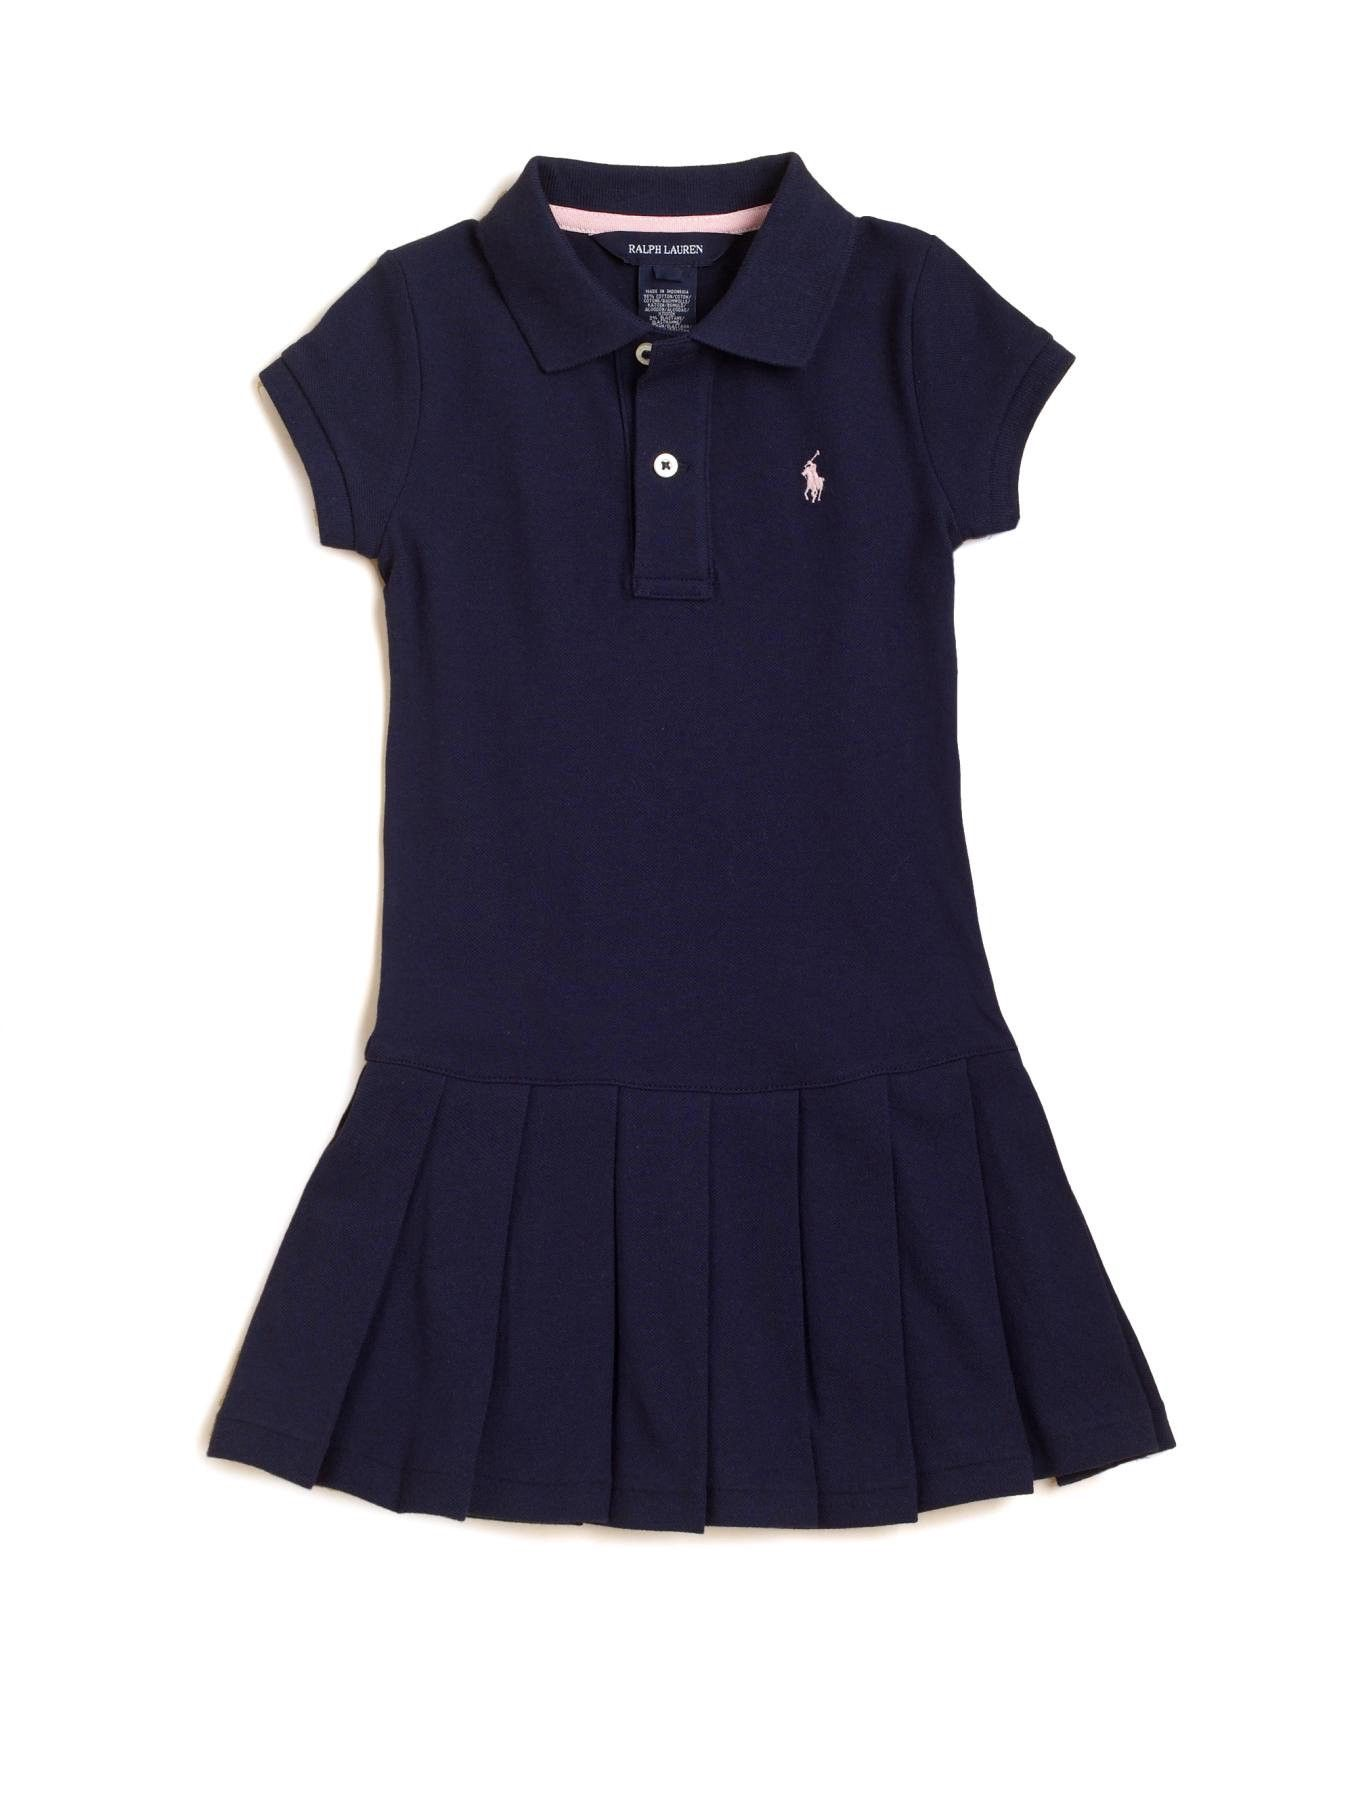 7f51ceb41 Toddler s   Little Girl s Polo Dress by Ralph Lauren in 2019 ...